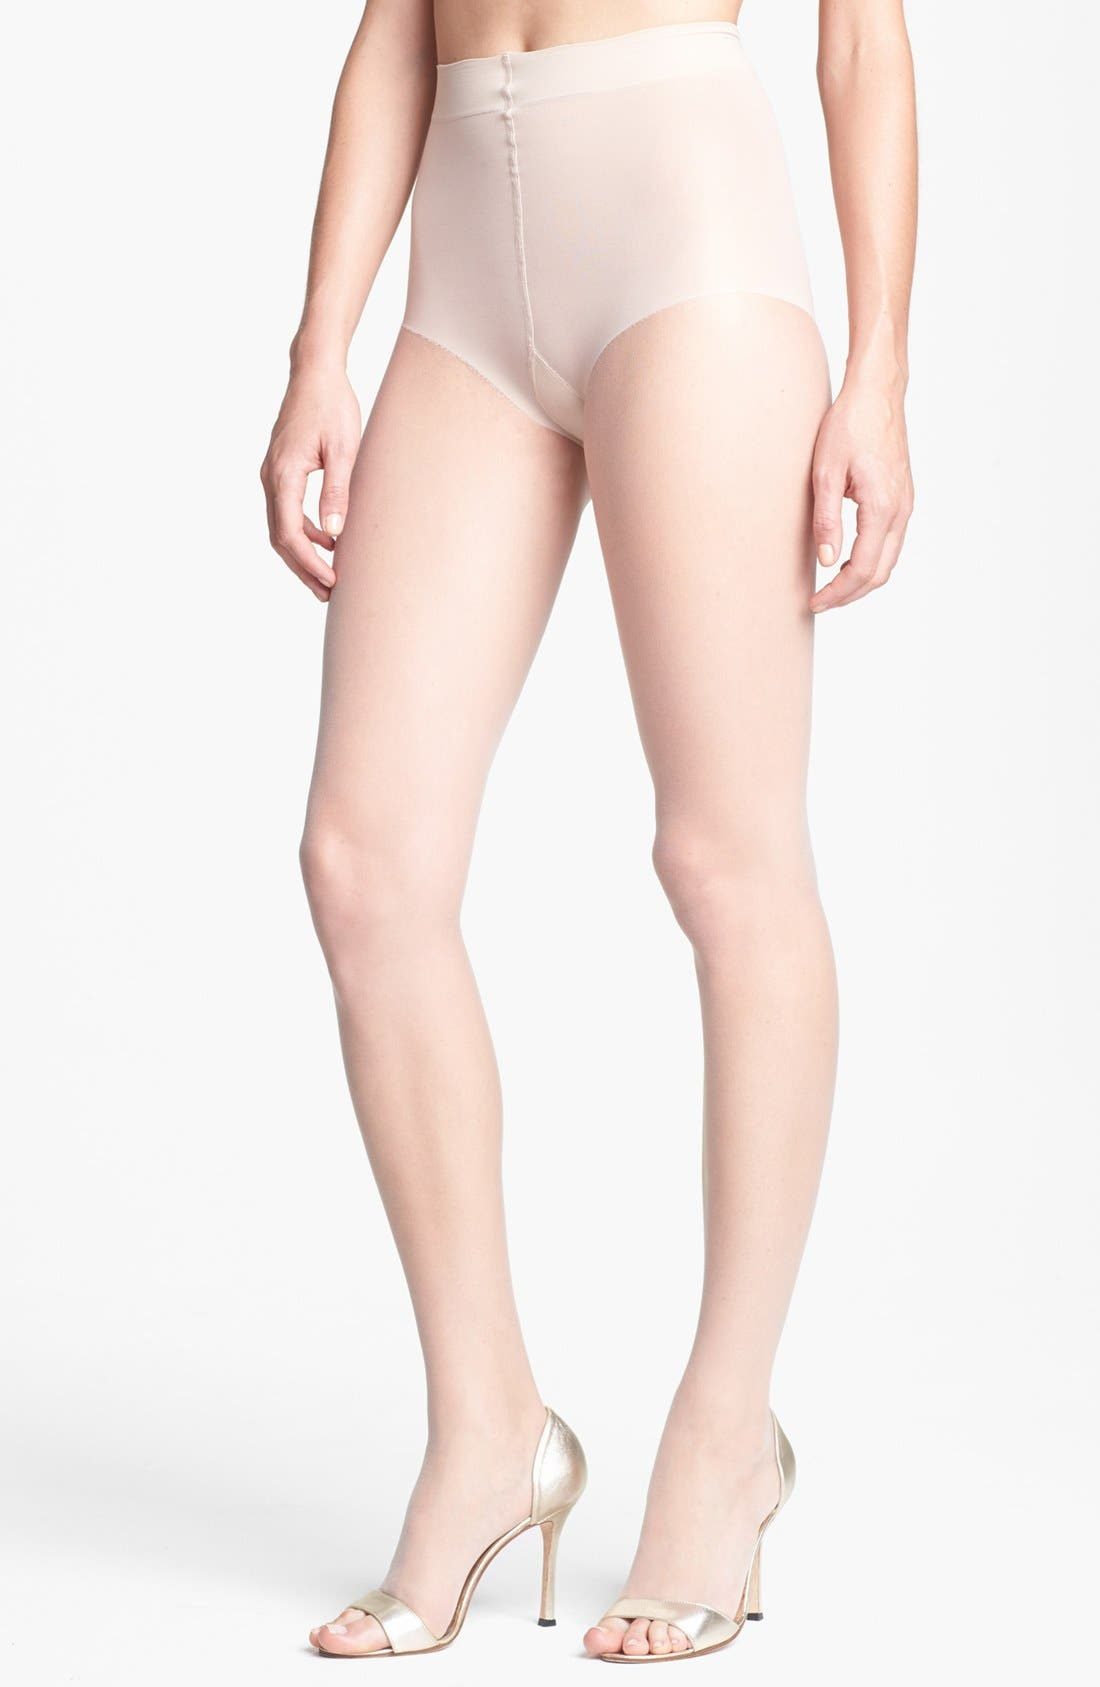 Donna Karan The Nudes Toeless Pantyhose